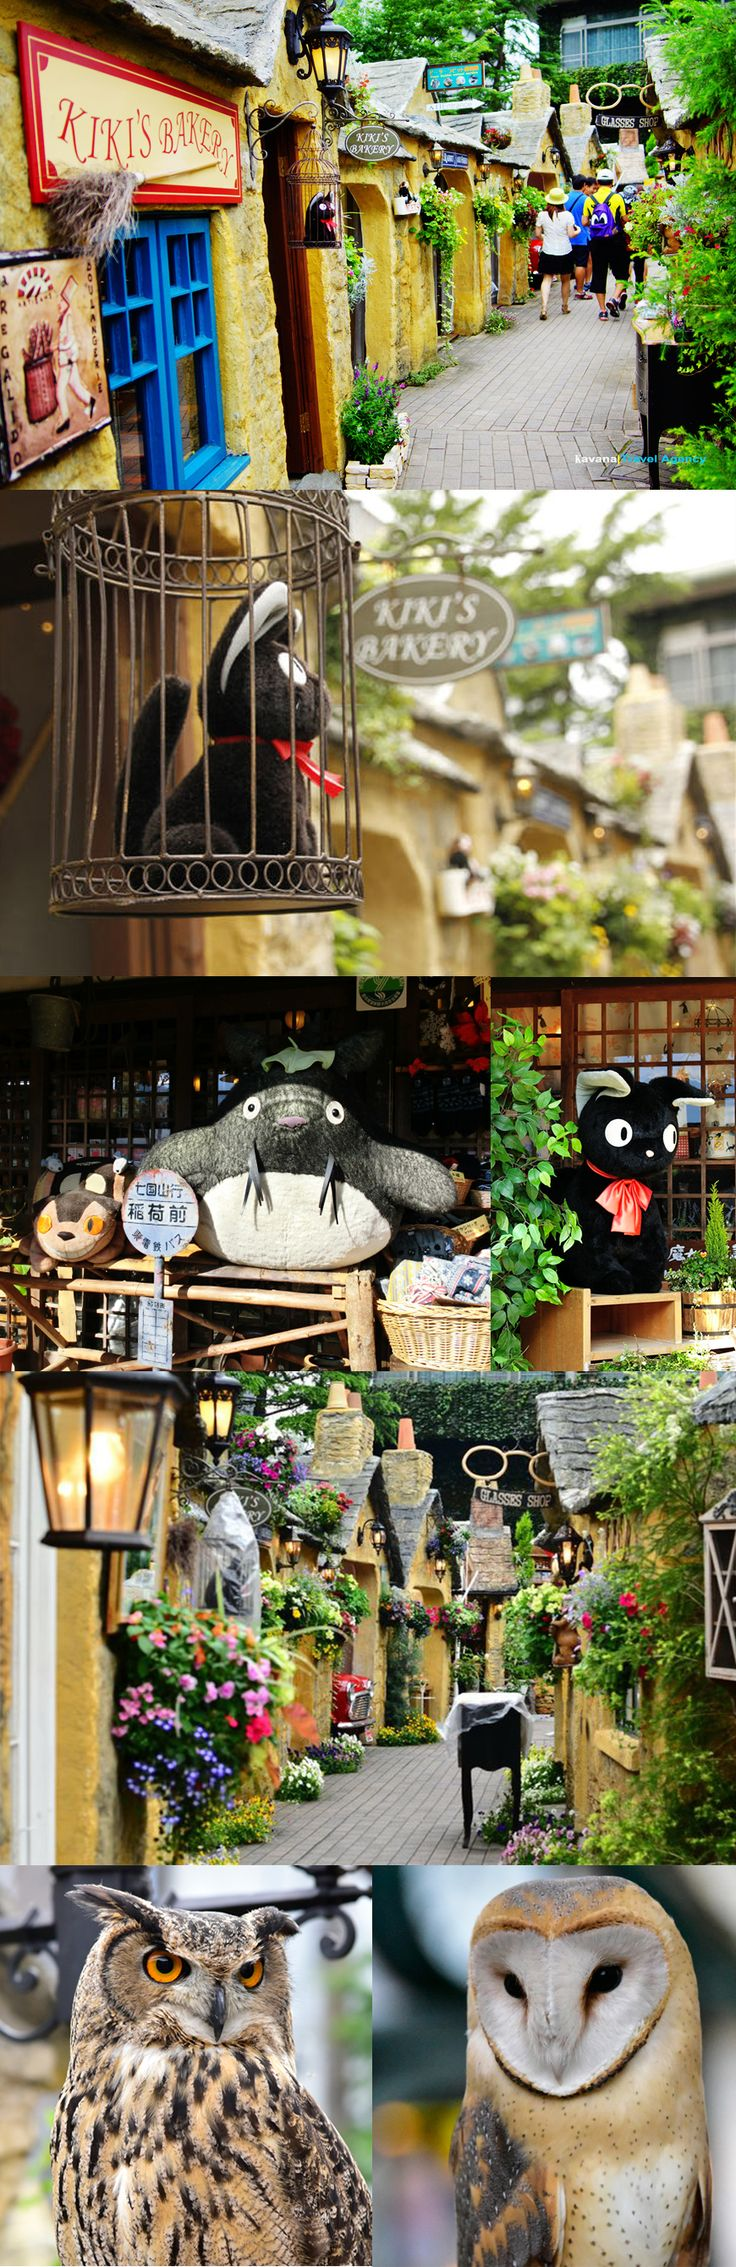 Yufuin Floral Village with adorable Kiki's Delivery Service Bakery and owls! // Yufuincho, Yufu, Oita Prefecture, Japan